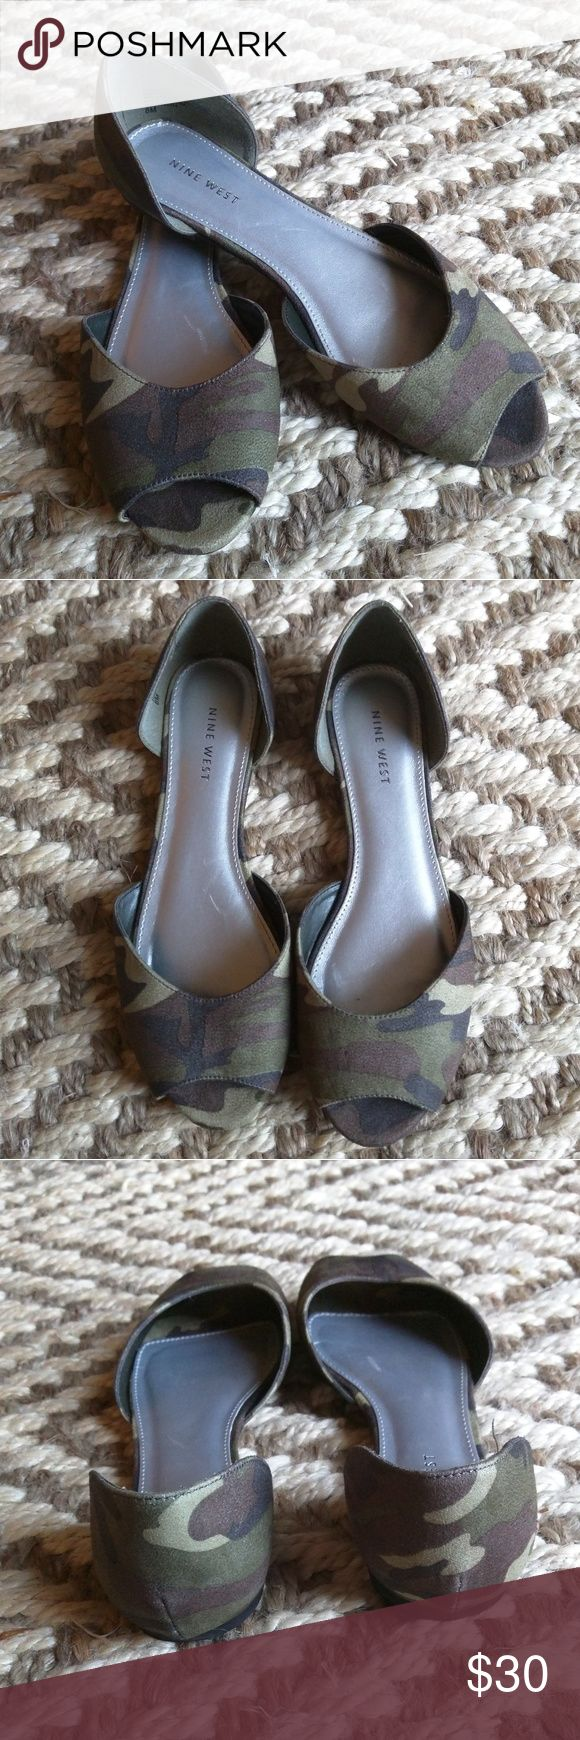 Nine West Camouflage Flats Adorable flats by Nine West, worn once! Awesome camouflage pattern, great for summer! Nine West Shoes Flats & Loafers